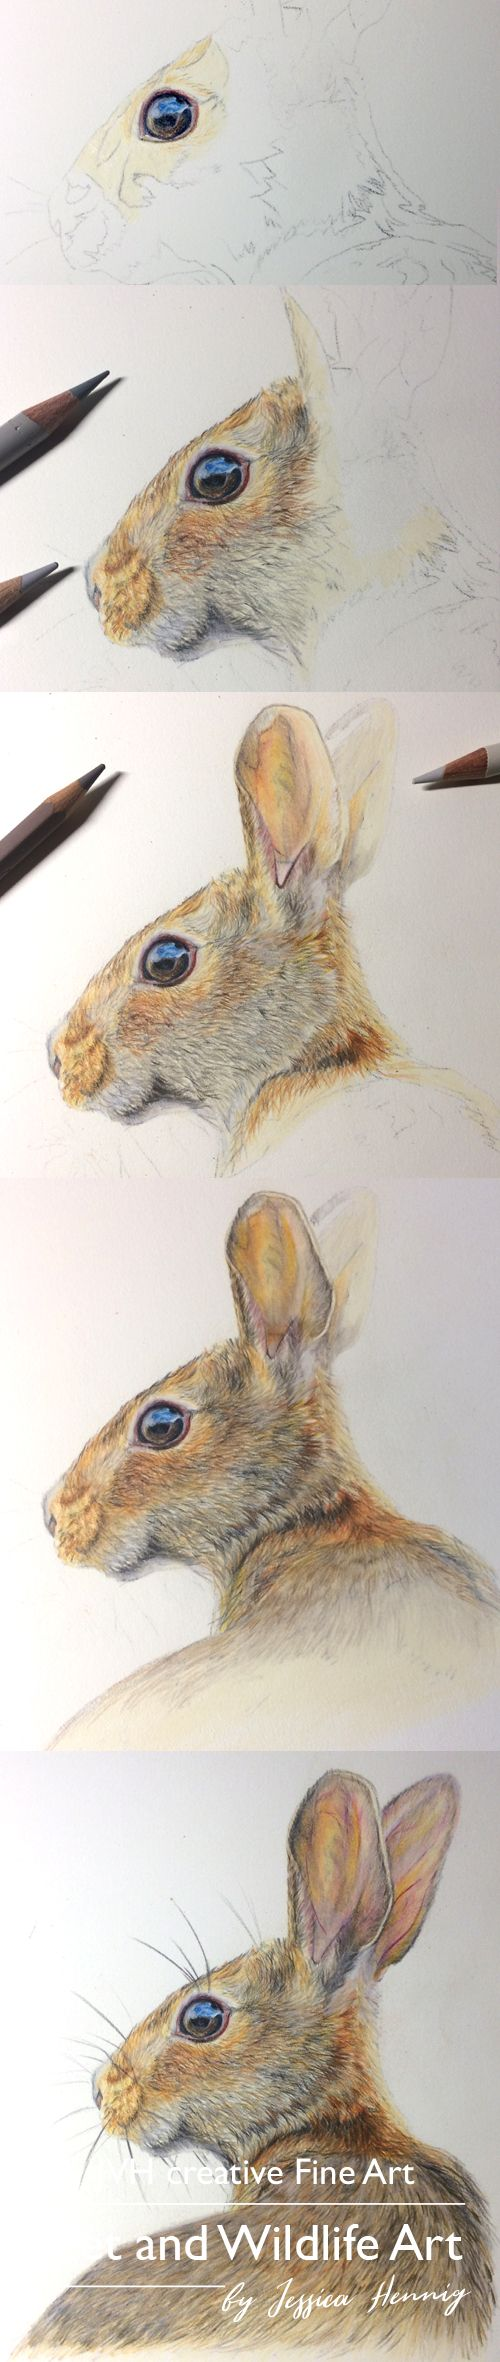 how to draw a snowshoe hare step by step